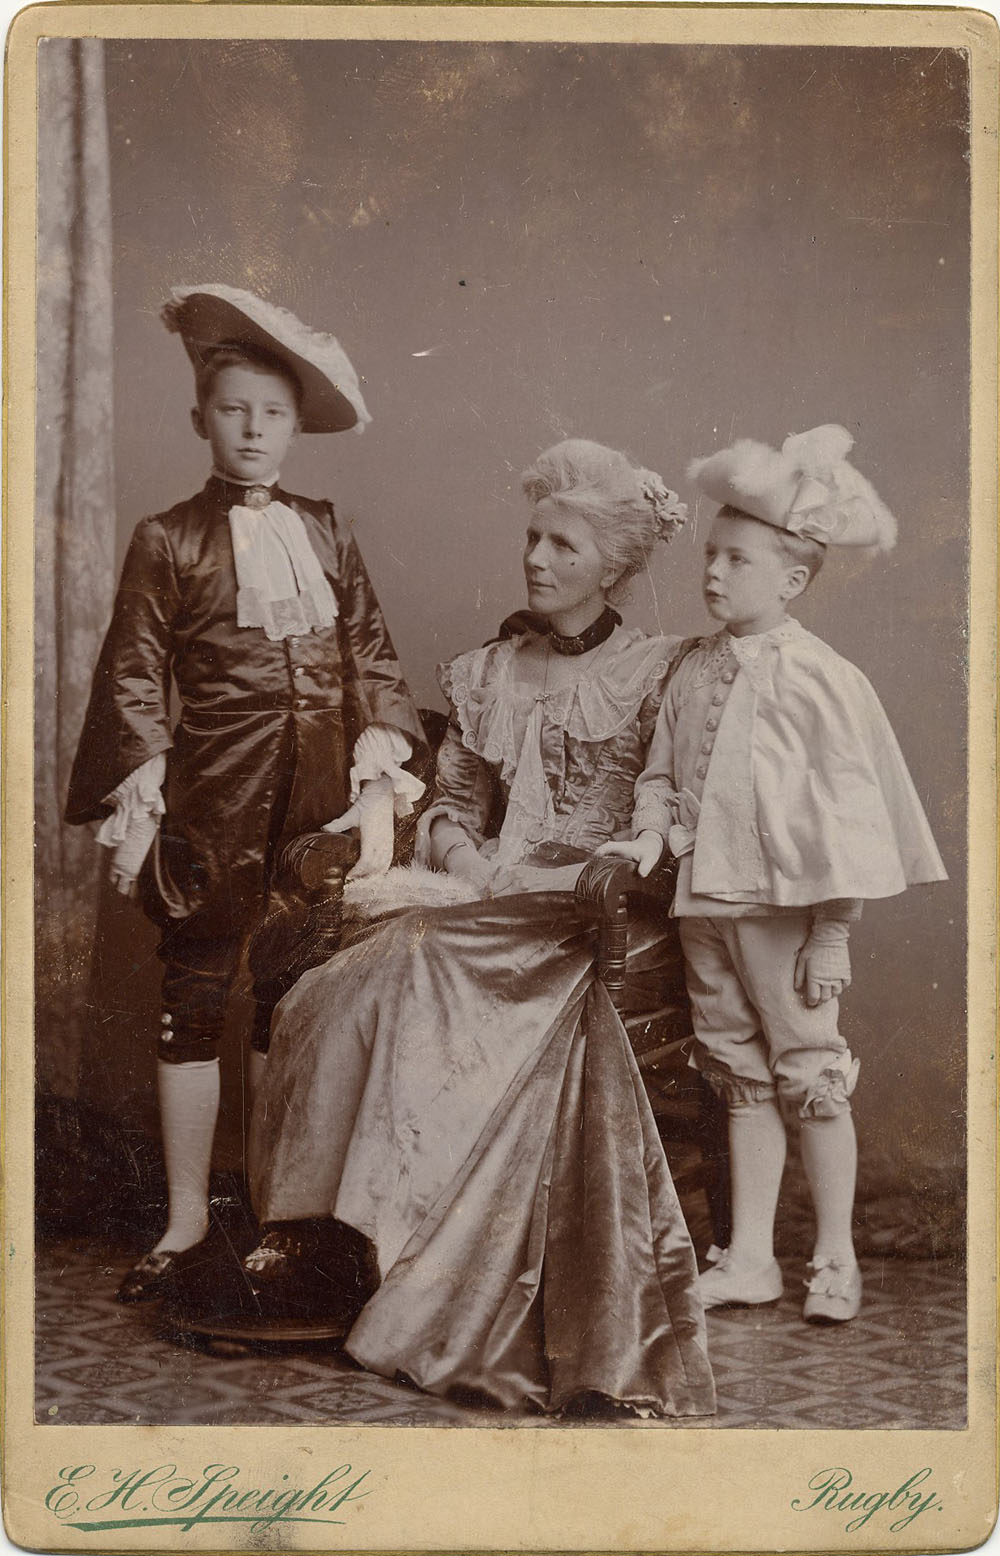 Portrait of Rupert, Alfred and Mary Ruth Brooke in period costume. Taken in 1898 by E.H. Speight, Rugby (RCB/Ph/4).